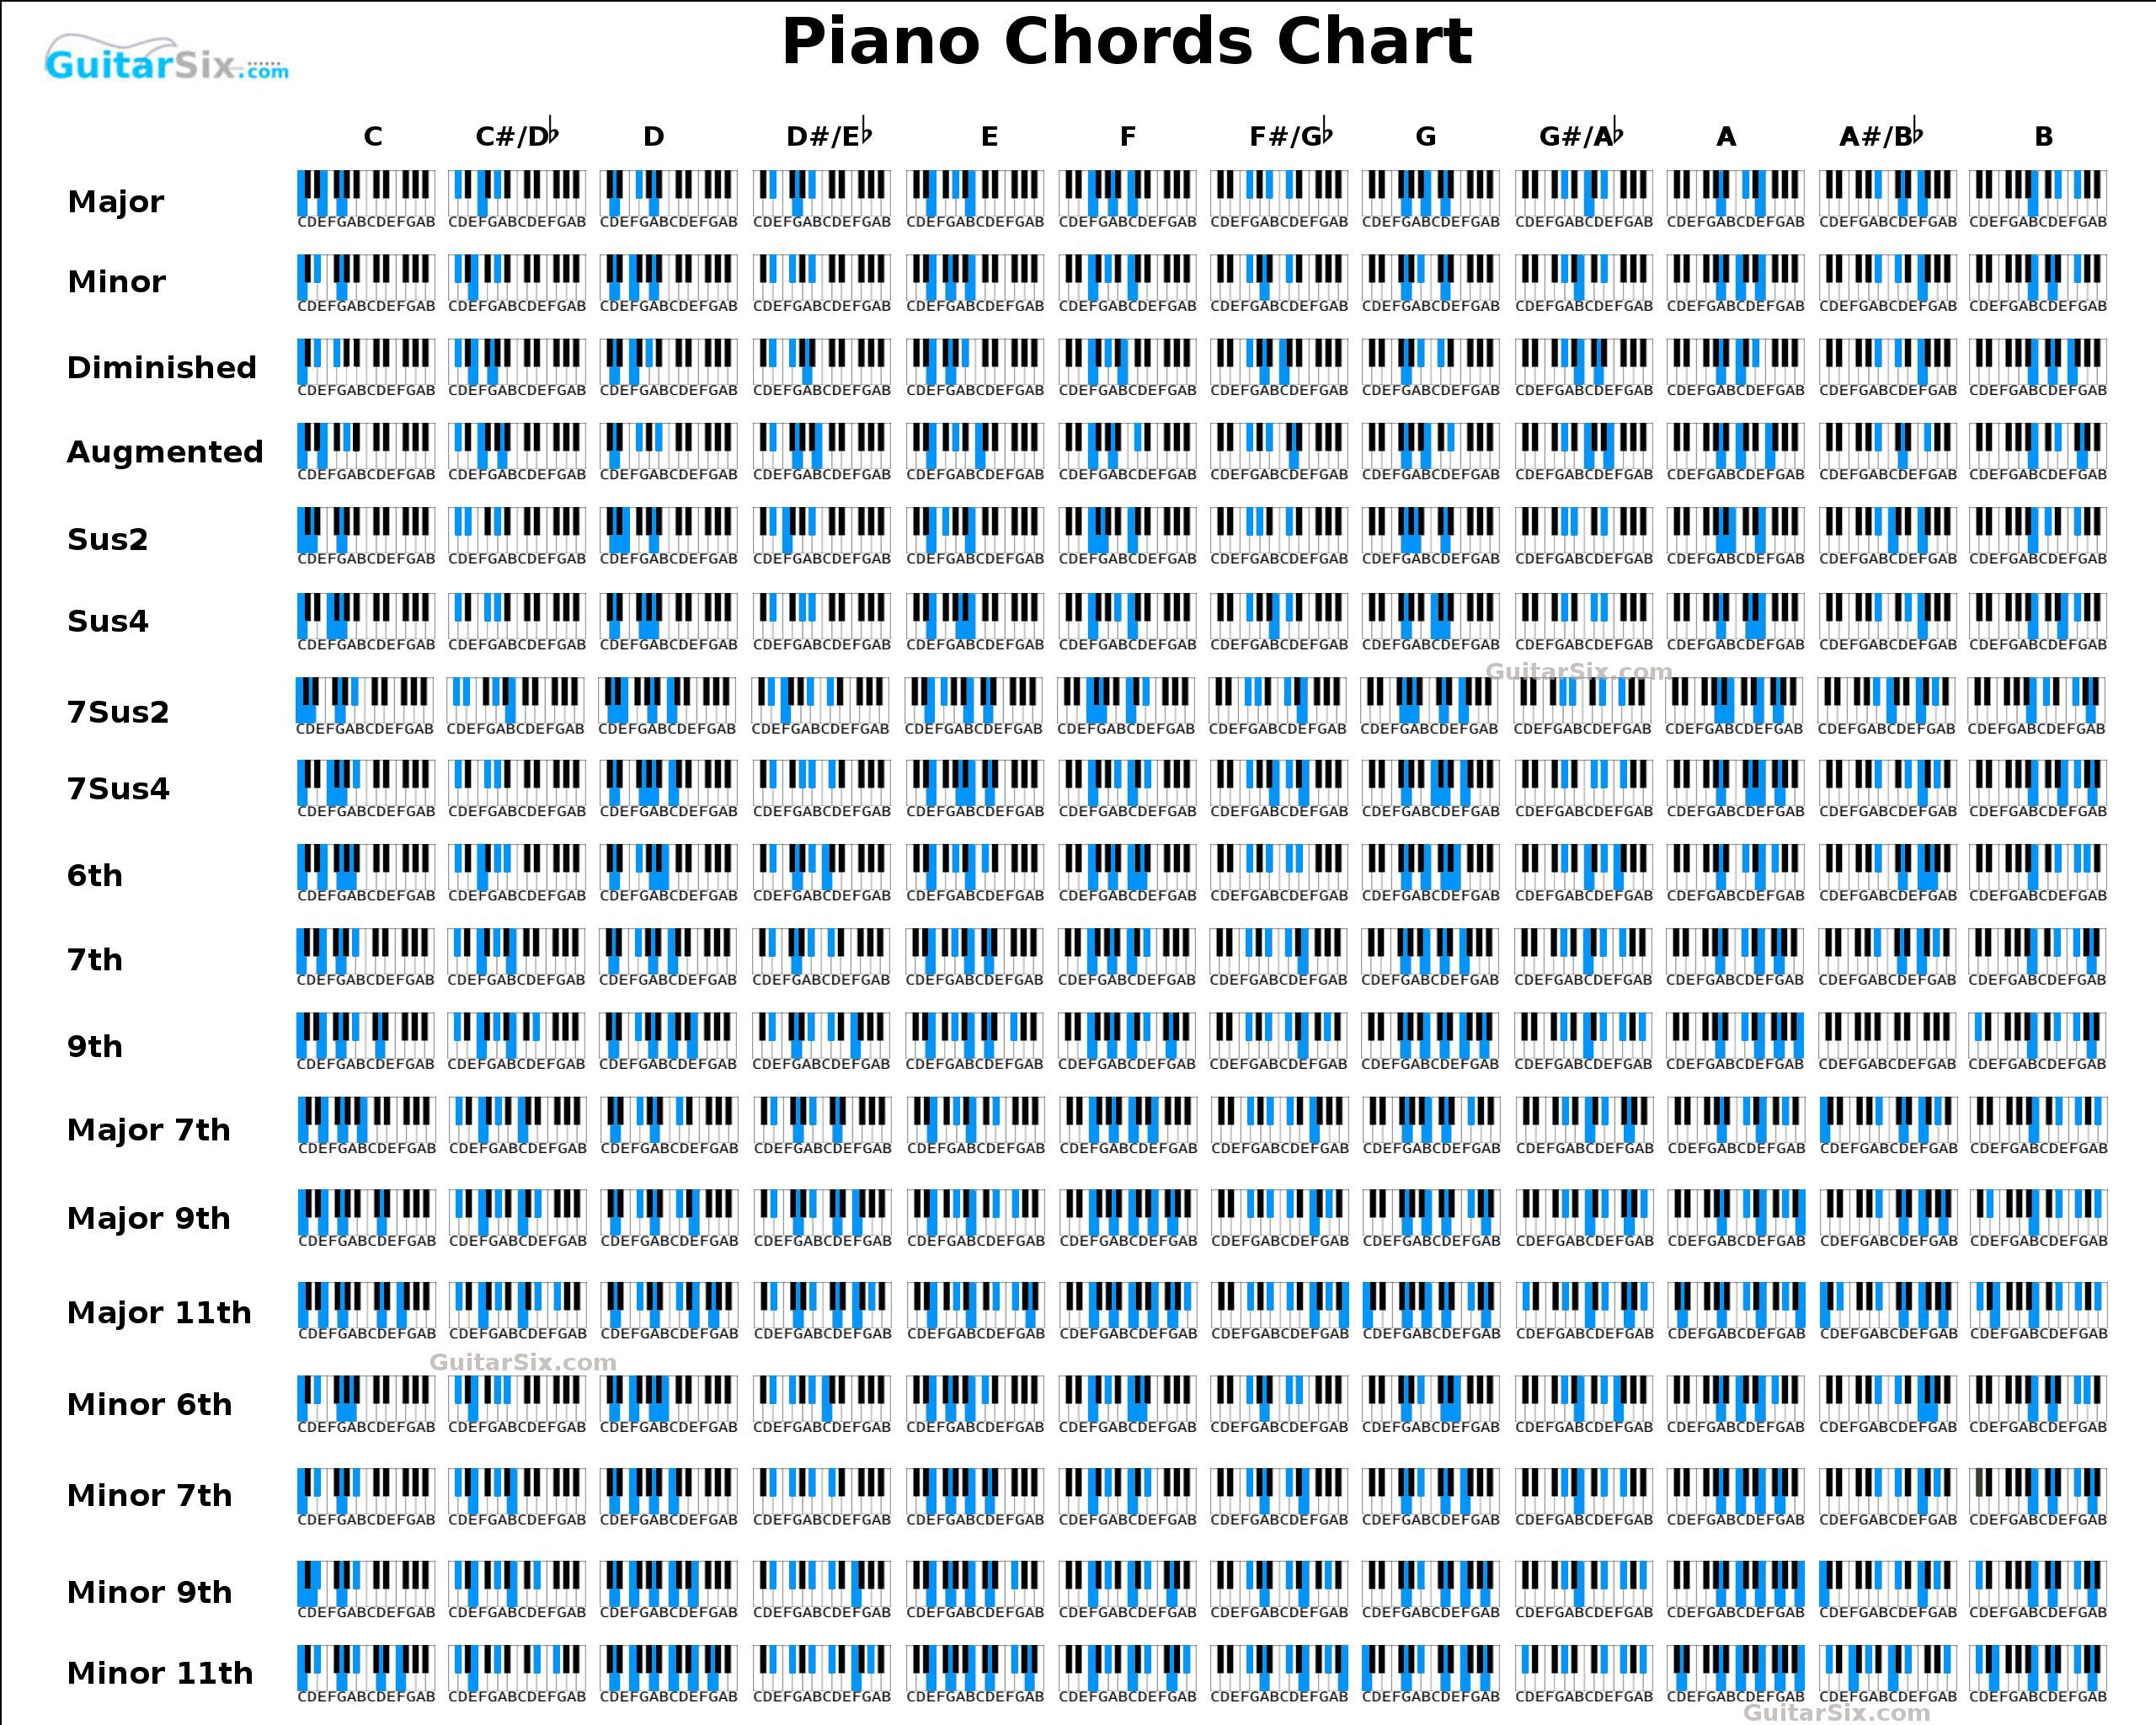 PIANO CHORDS COMPLETE LIST POSTER MUSIC KEYBOARD IMAGE PRINT GIANT WALL ART